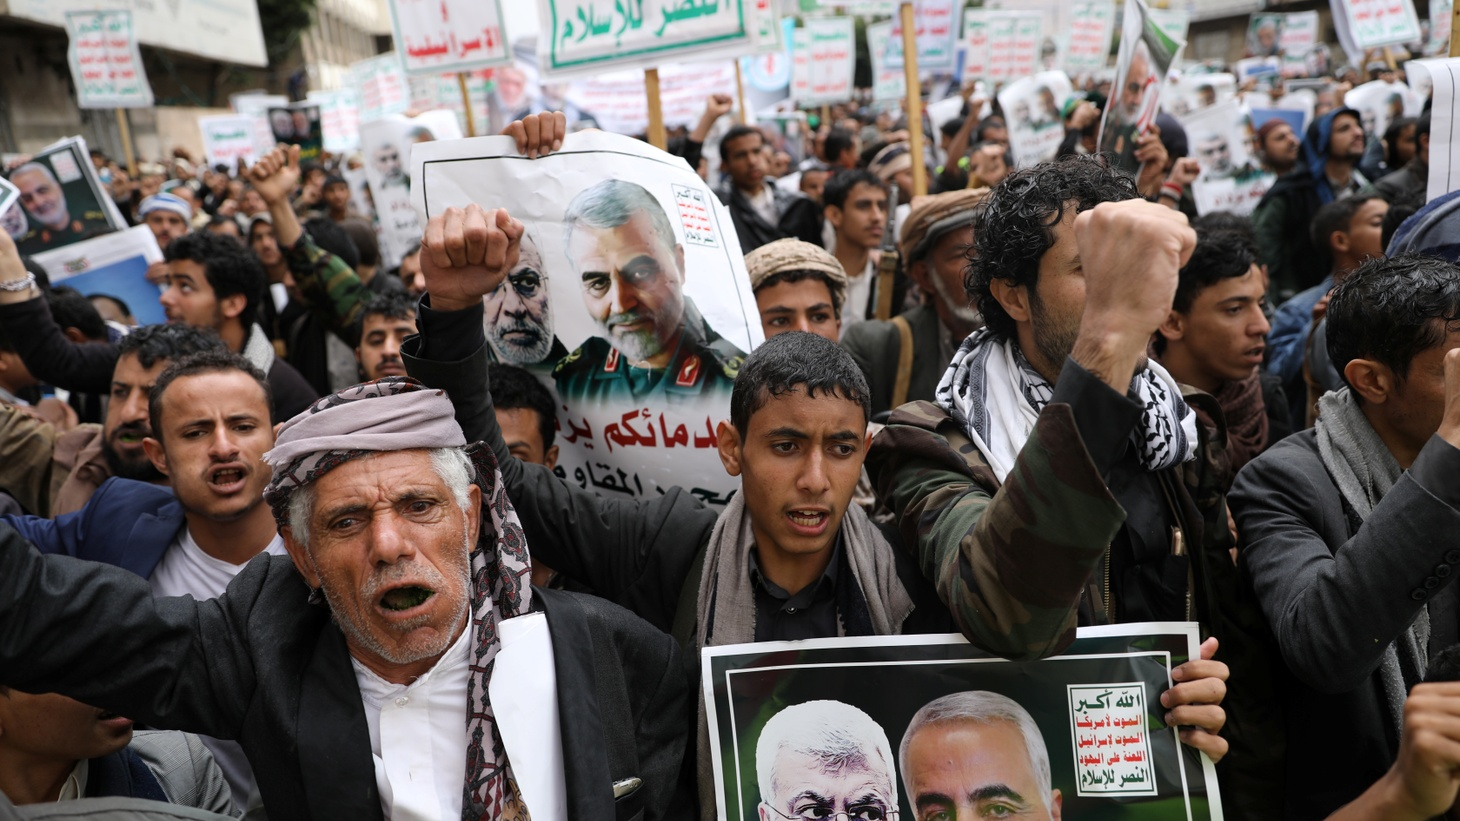 Supporters of the Houthis rally to denounce the U.S. killing of Iranian military commander Qassem Soleimani and Iraqi militia commander Abu Mahdi al-Muhandis, in Sanaa, Yemen January 6, 2020.